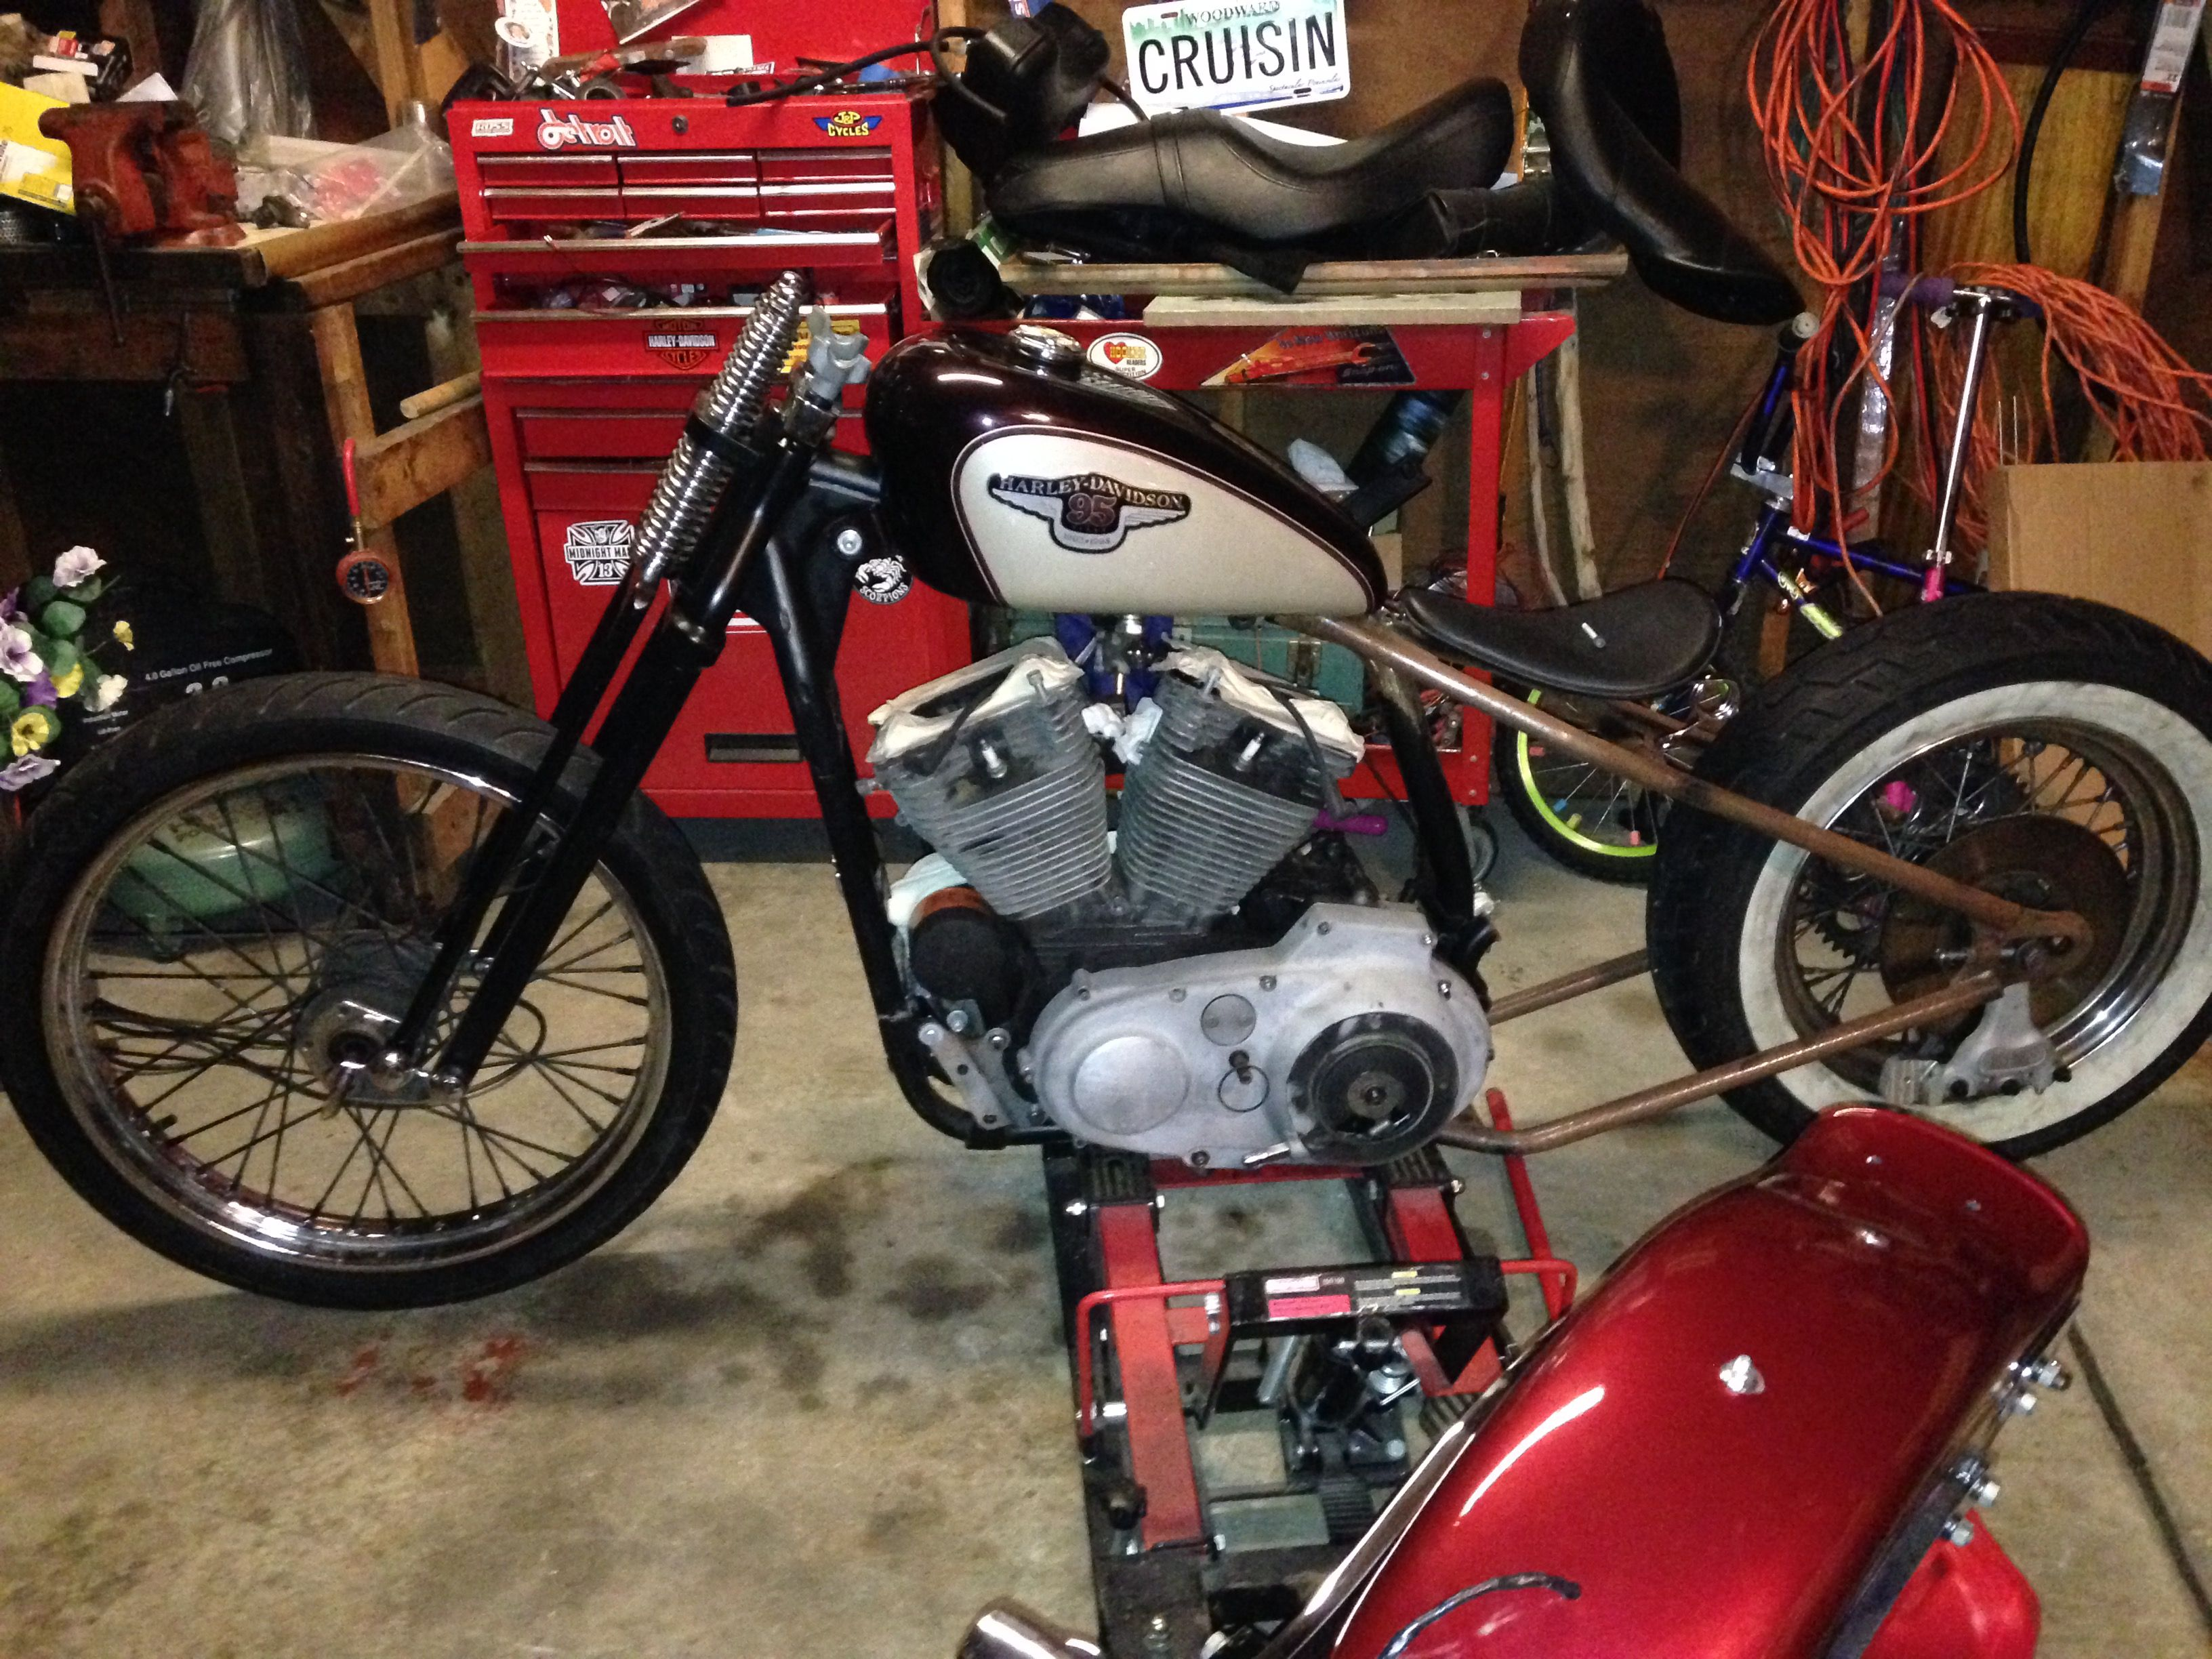 4d162ad78e56 Evo Sportster Hardtail Sportster Chopper, Hd Sportster, Harley Davidson  Motorcycles, Cars Motorcycles,